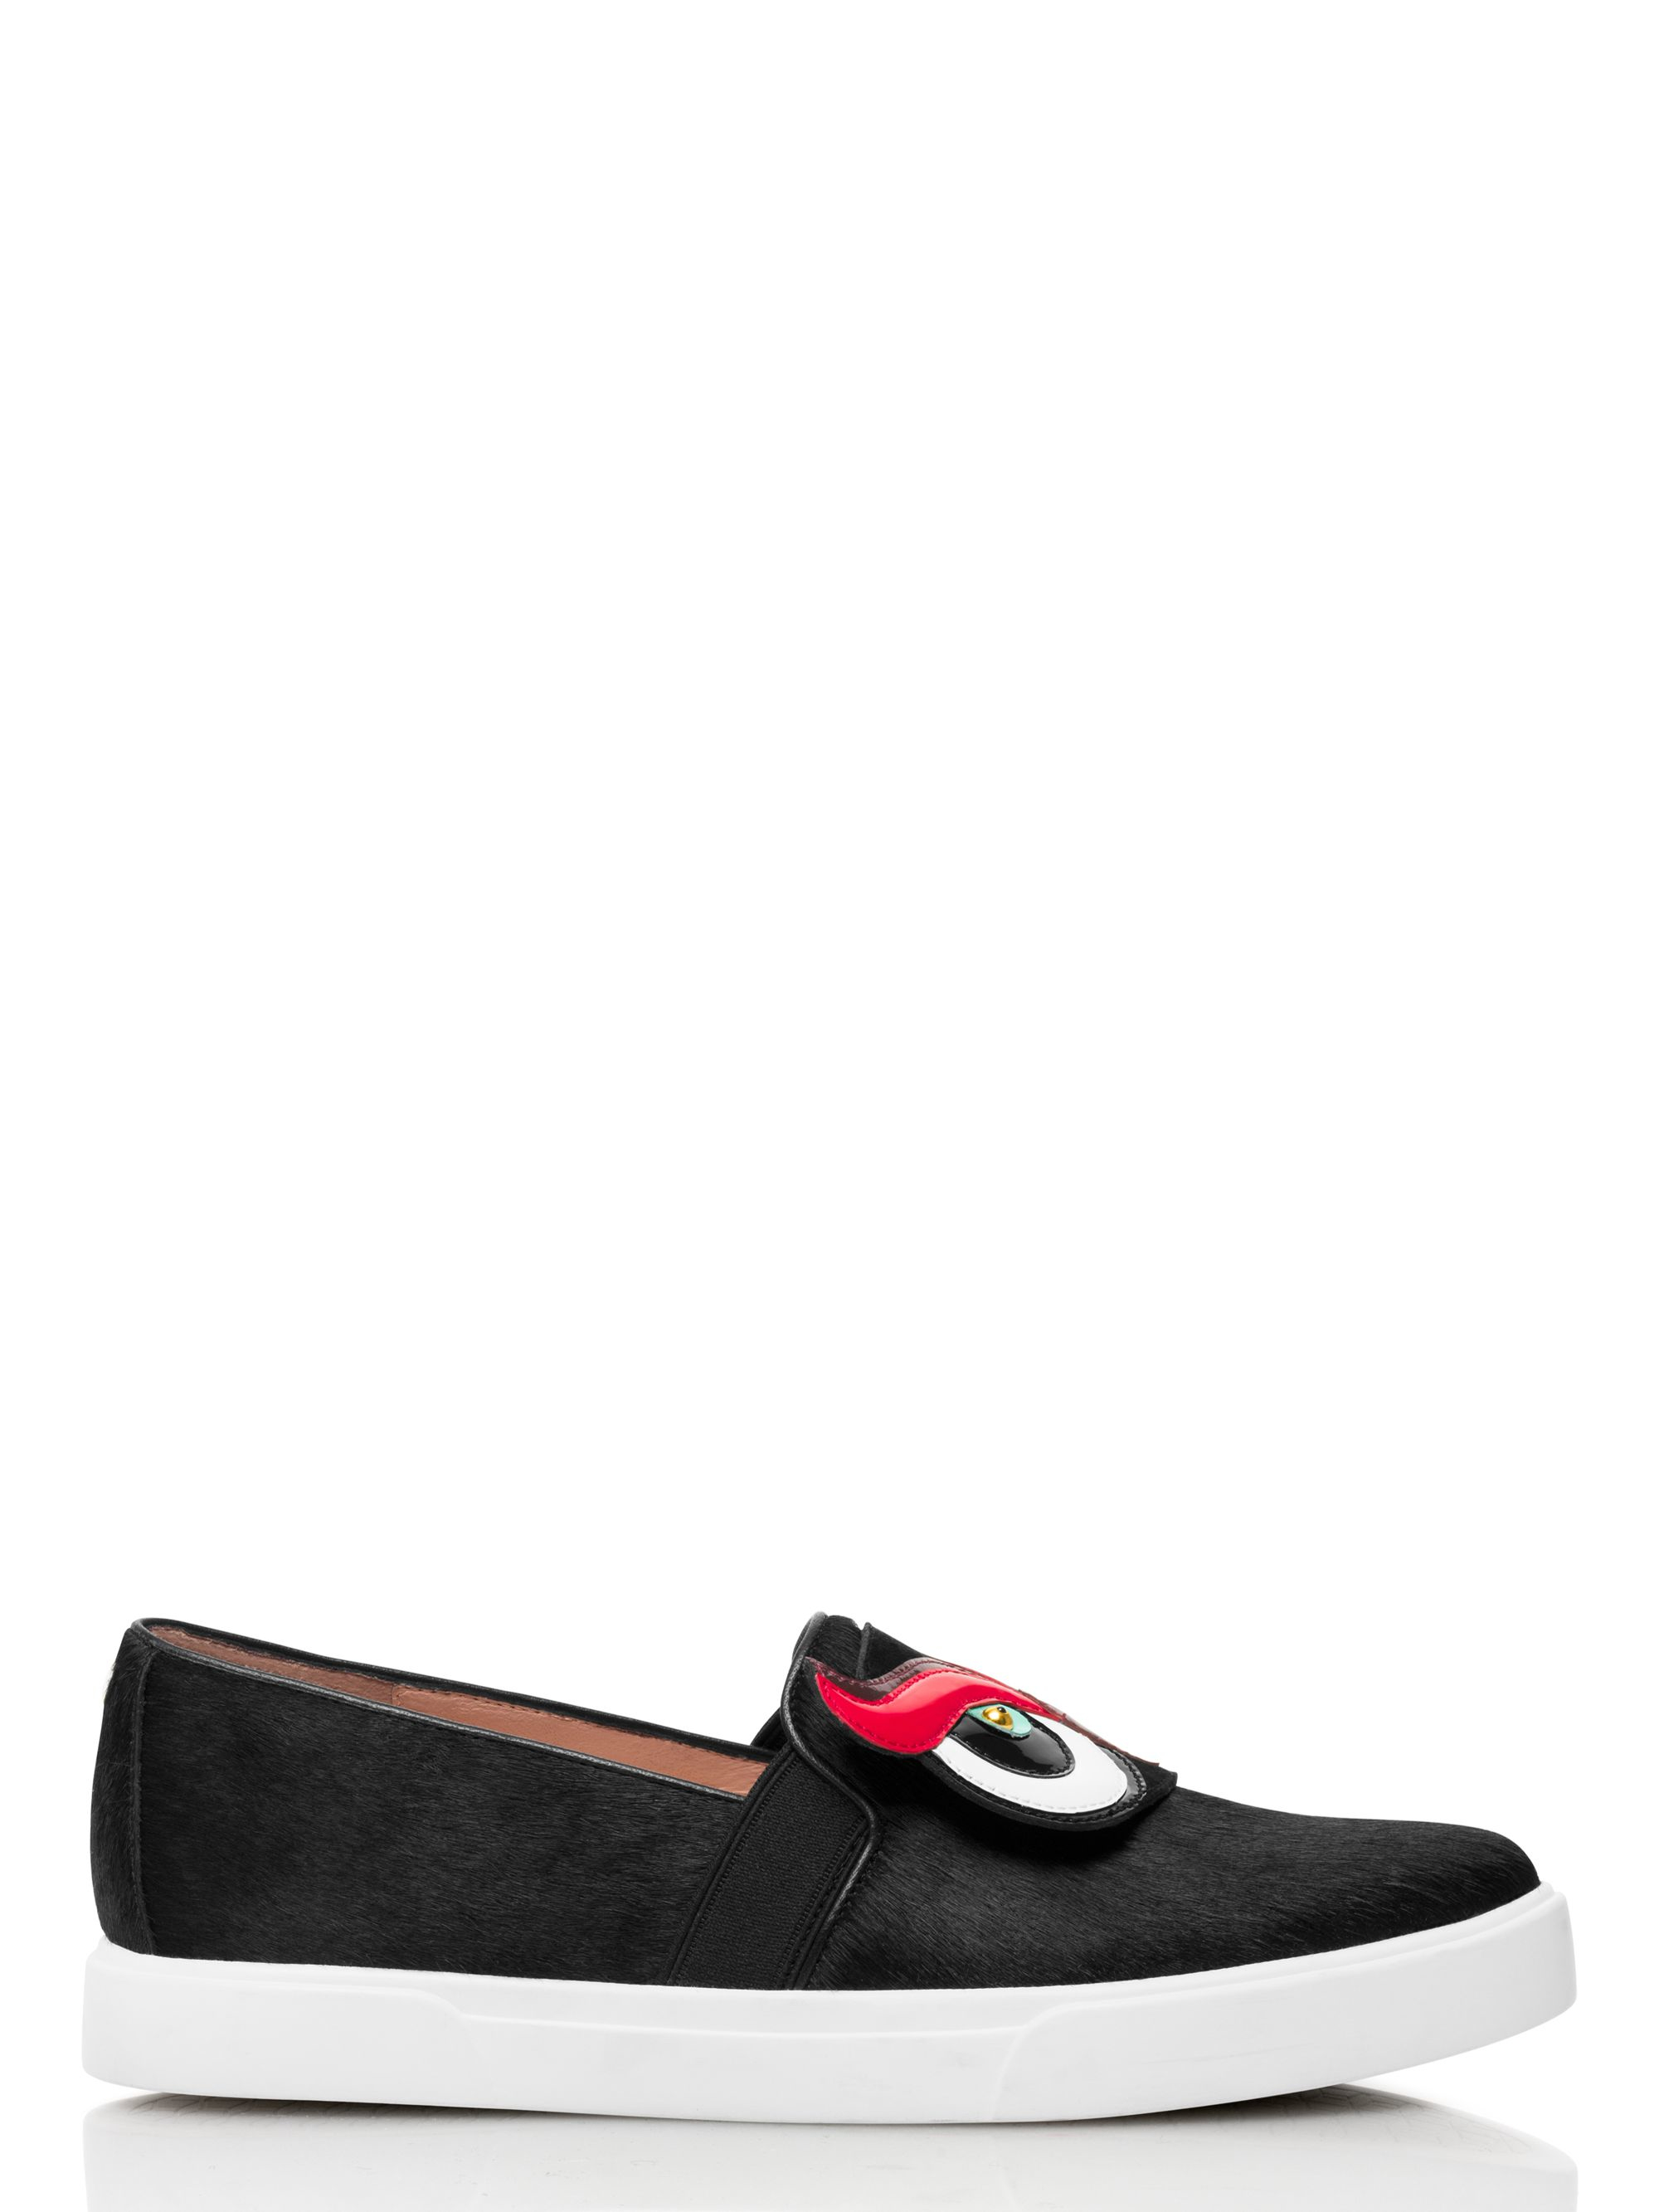 Lyst kate spade new york colie flats in black for Kate spade new york flats